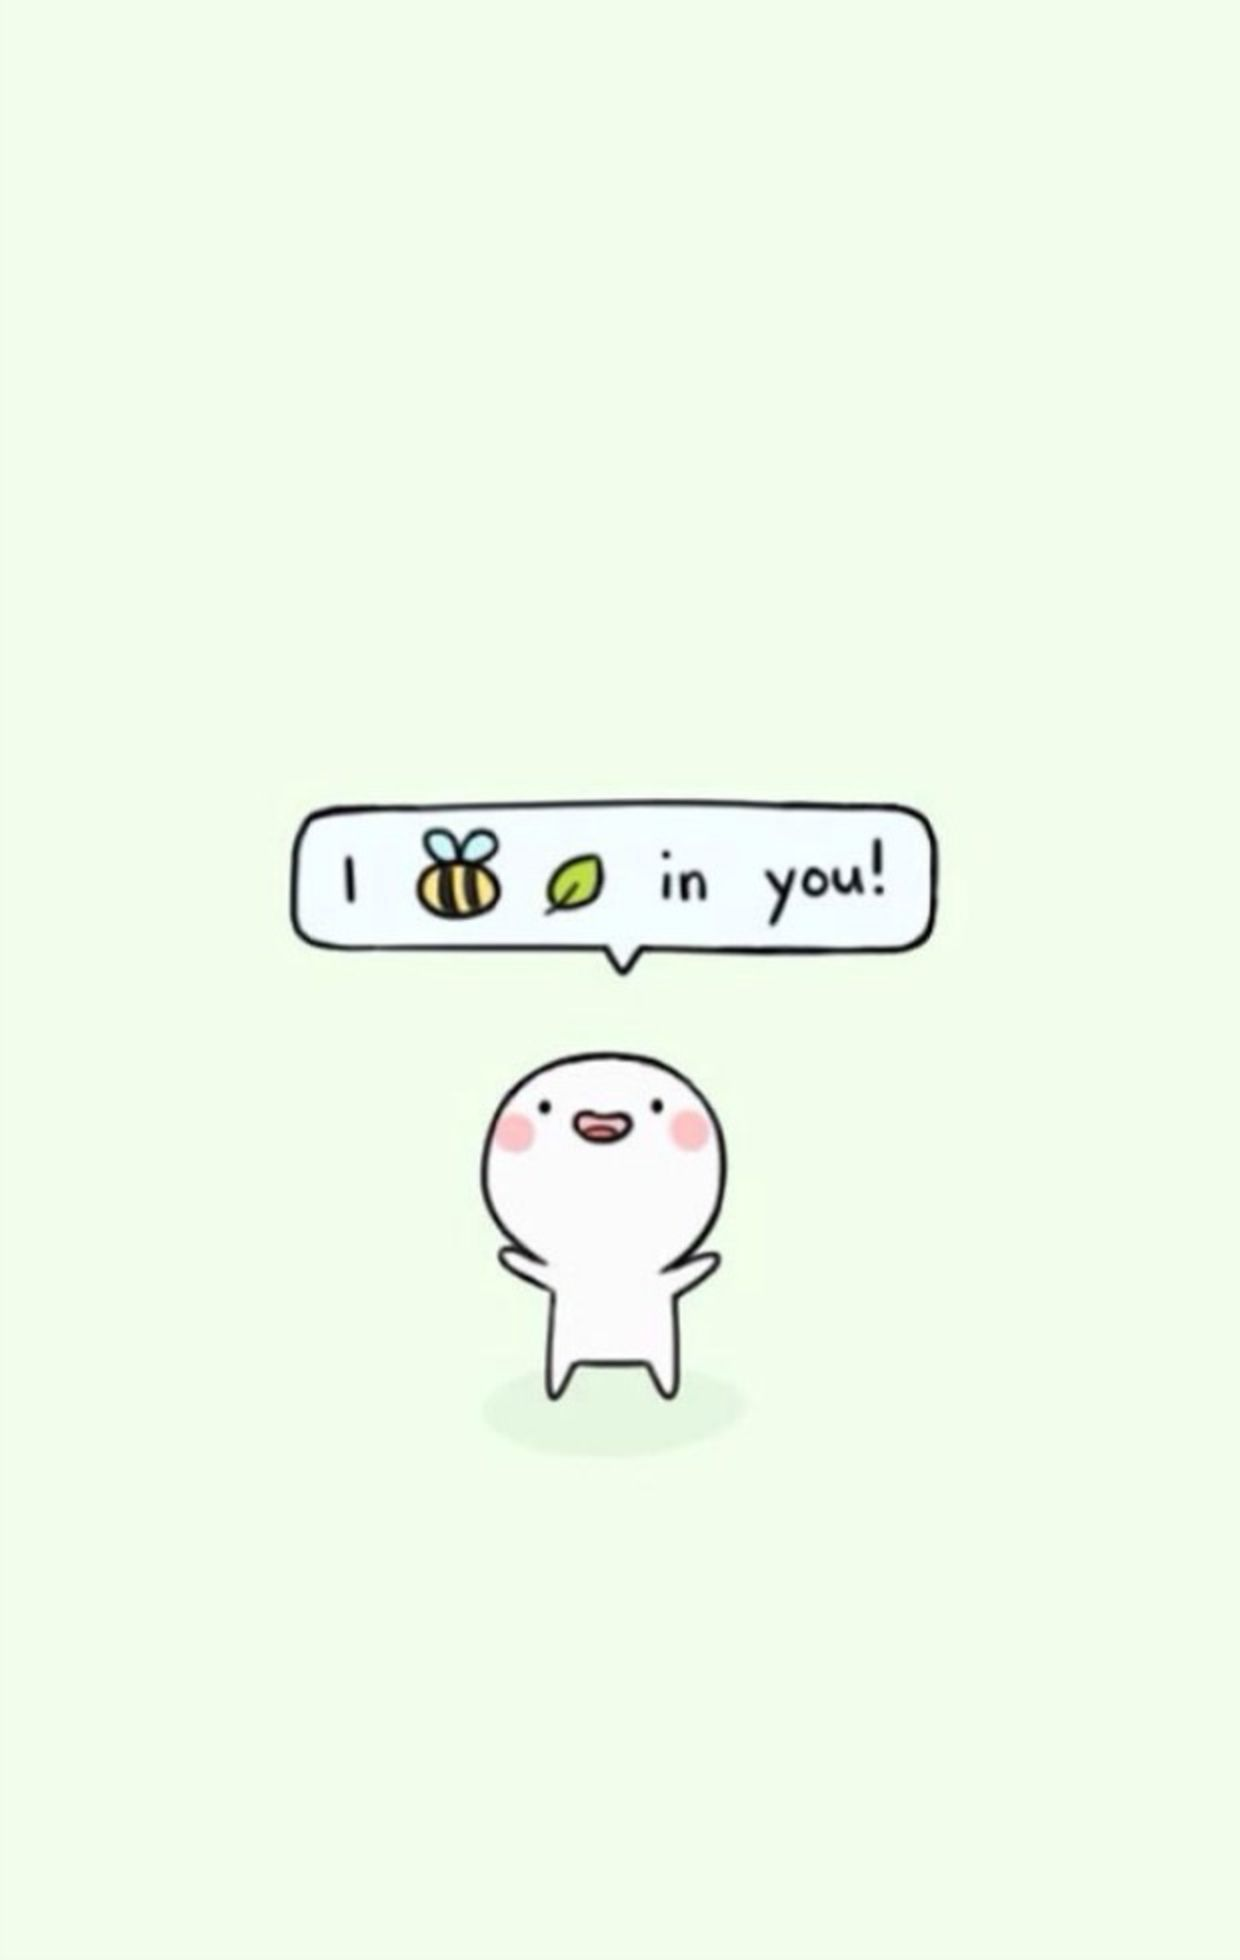 13 Wallpapers For Your Phone That Will Make You Happy Goodnet Funny Quotes Funny Wallpapers Cute Quotes